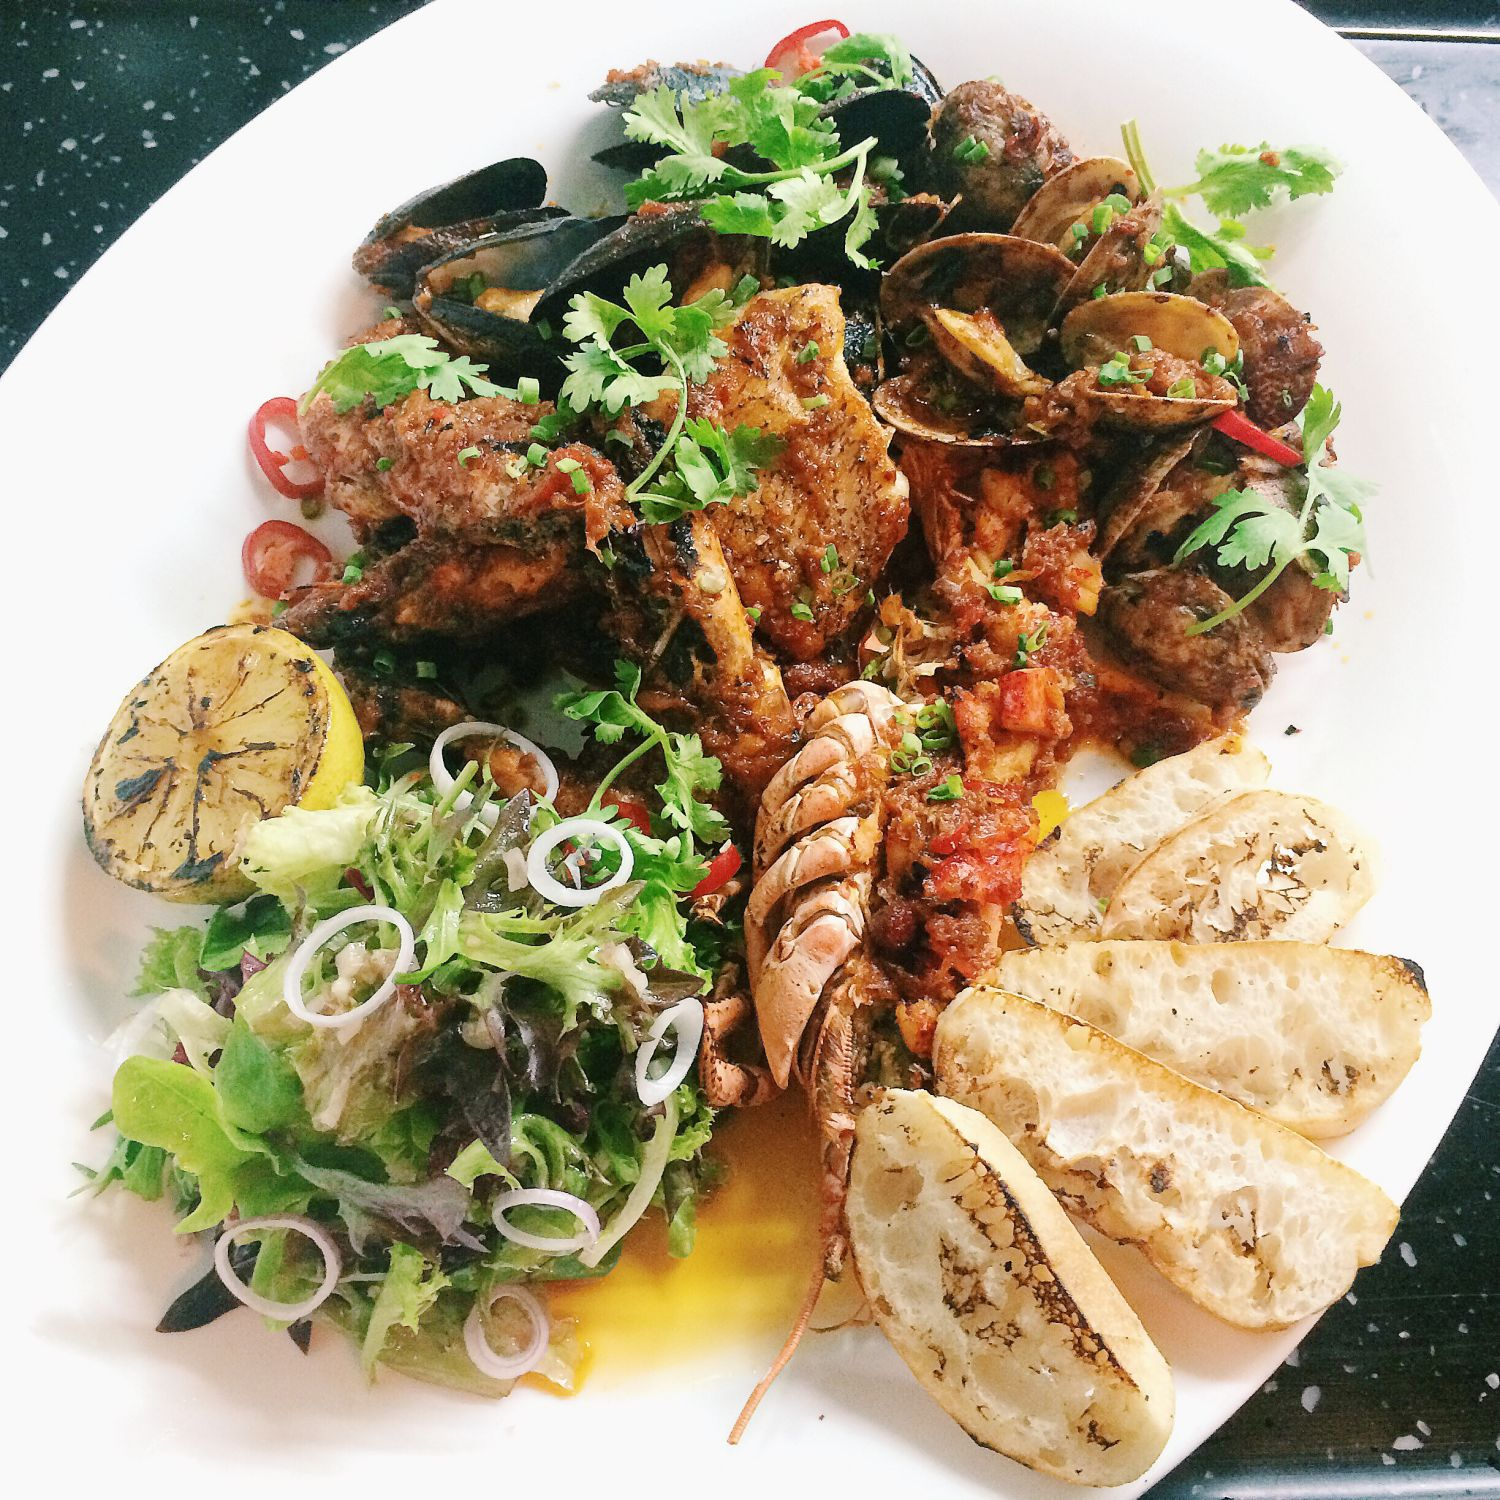 All-Hands-On-Deck Seafood Platter - The Prawn Star